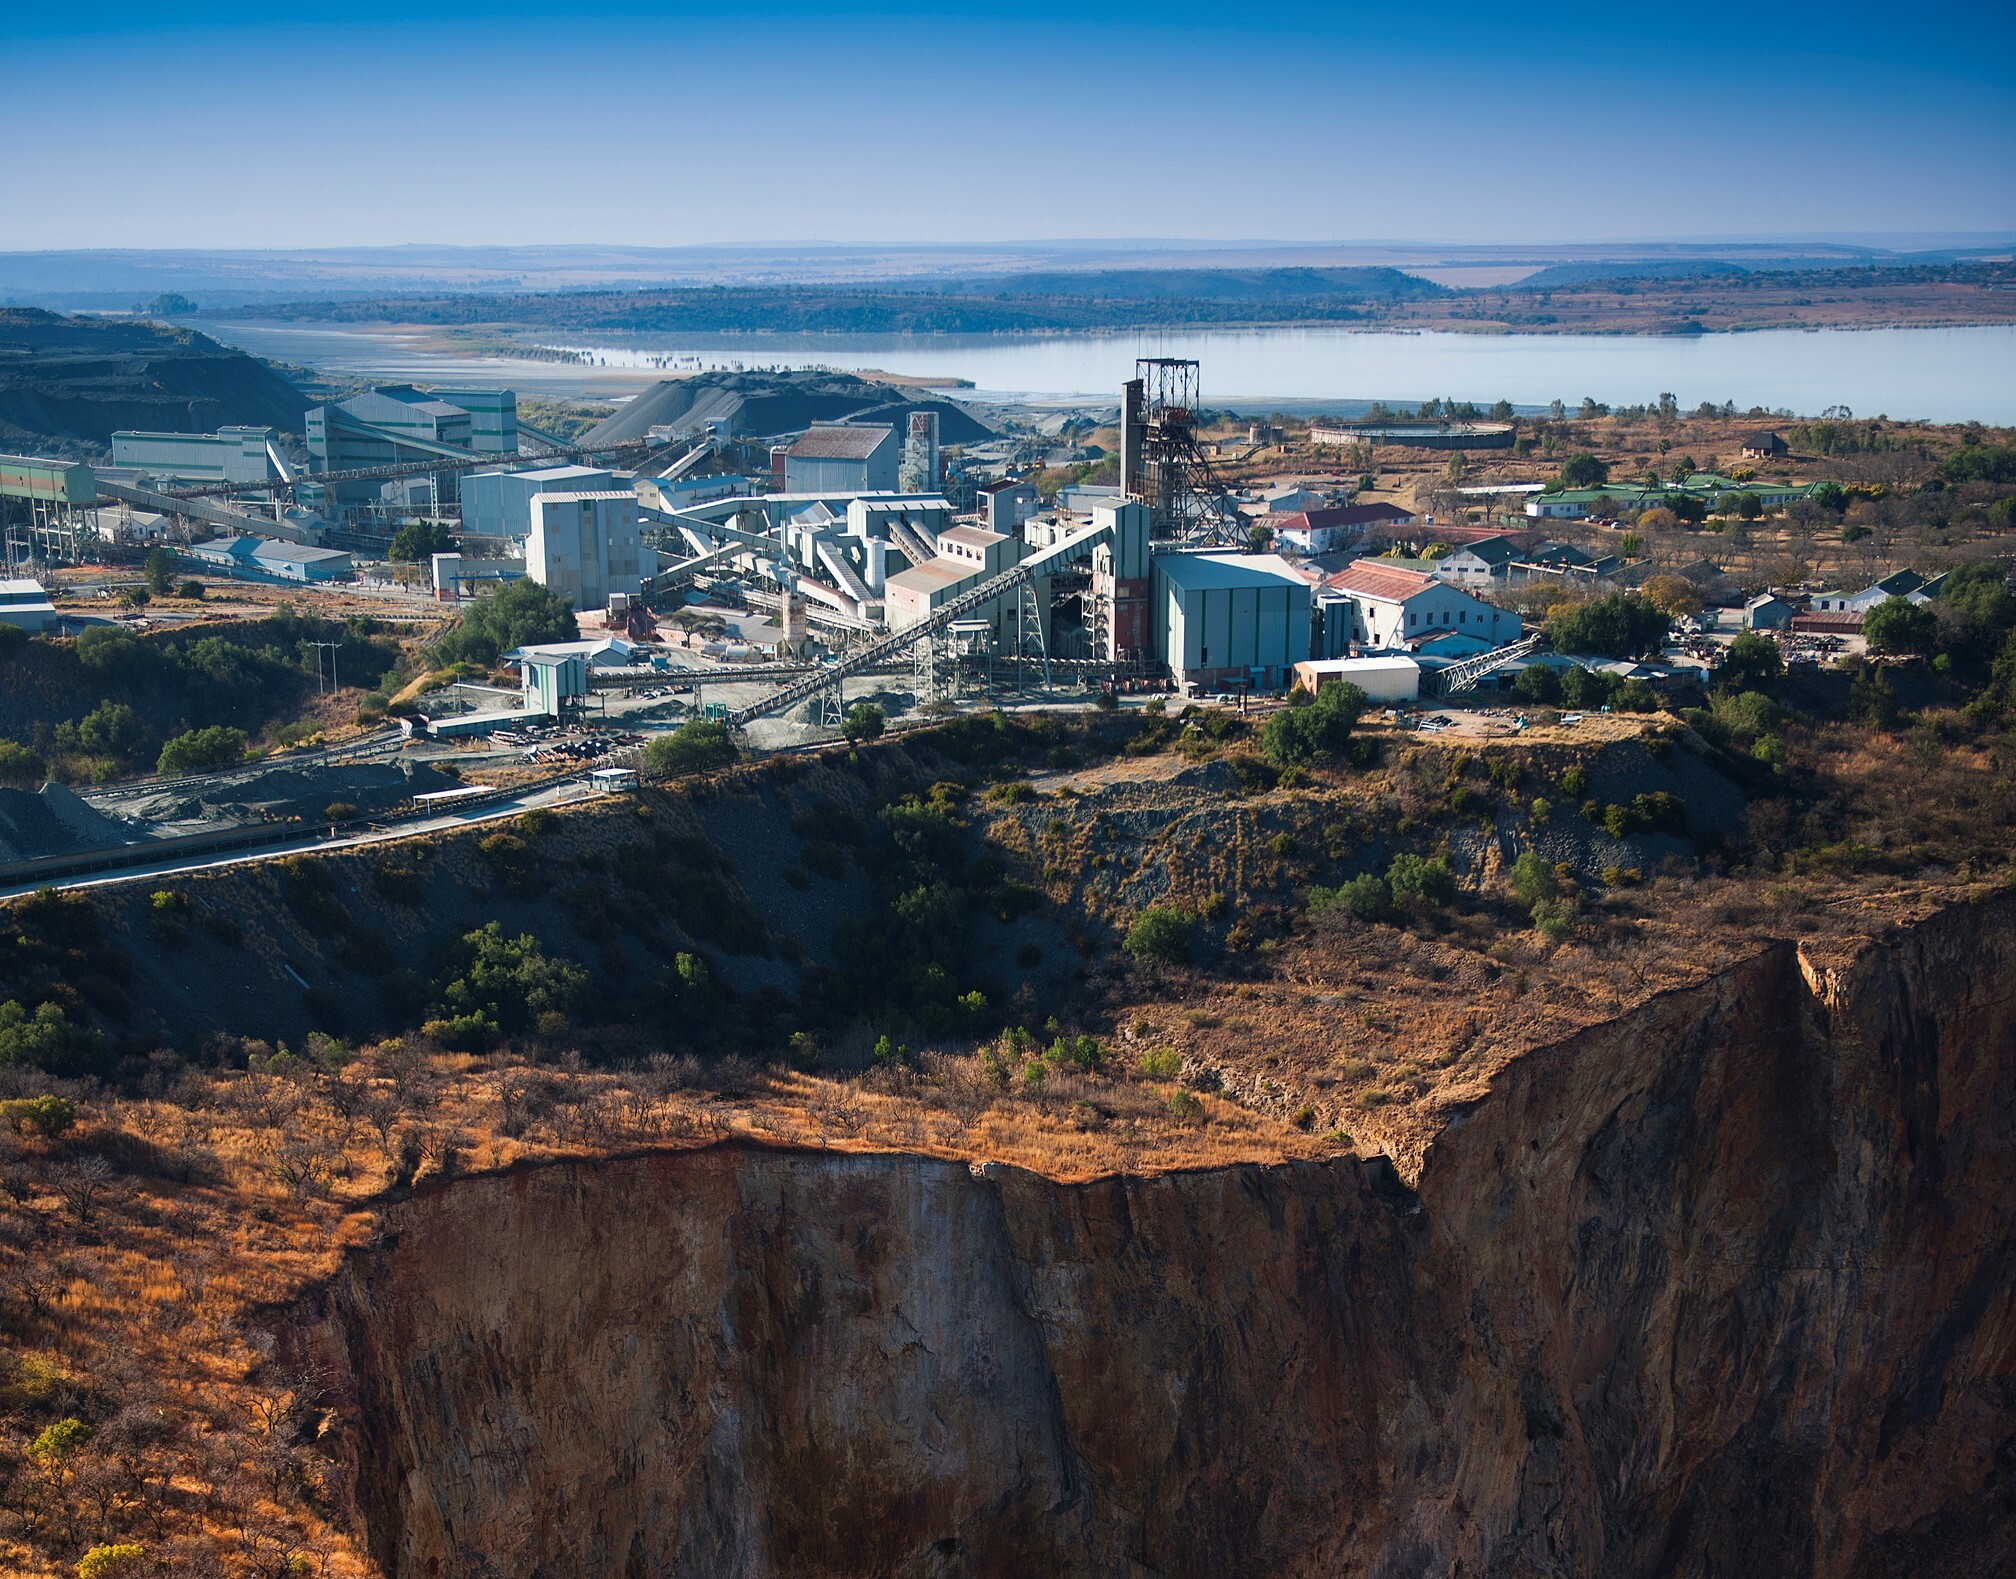 The Cullinan mine in South Africa cropped